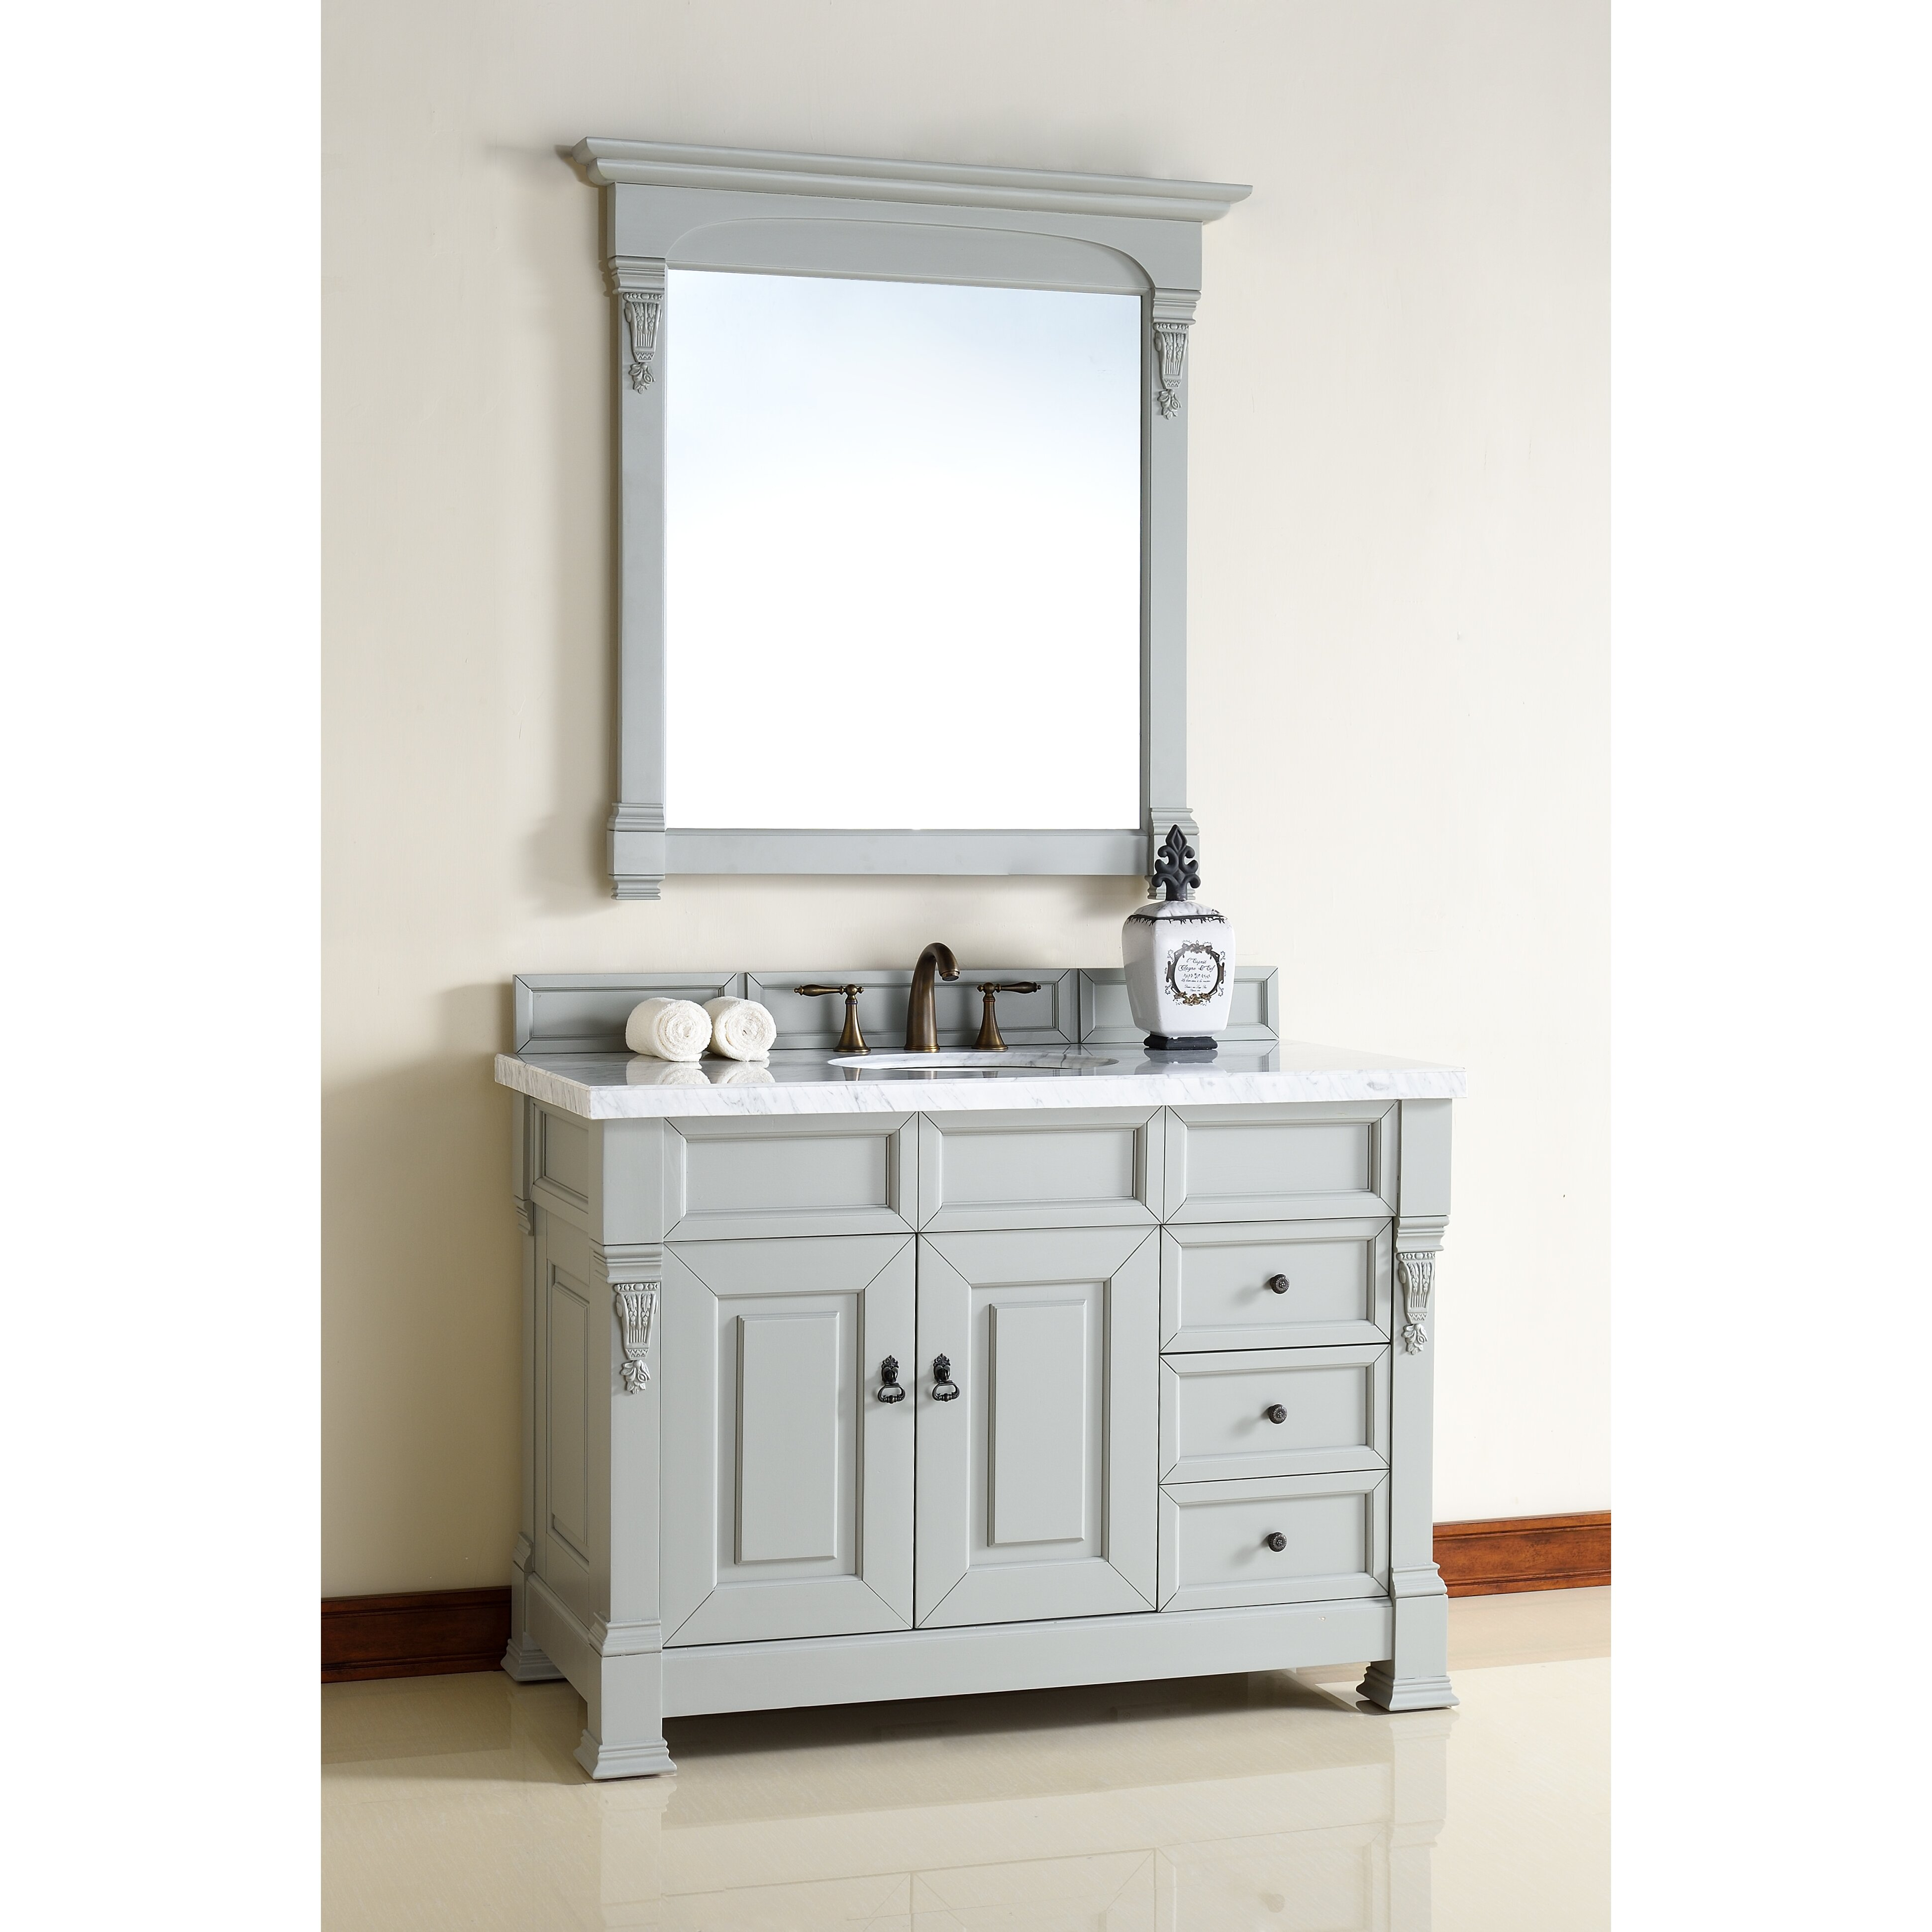 James martin furniture brookfield 48 single urban grey - Wayfair furniture bathroom vanities ...